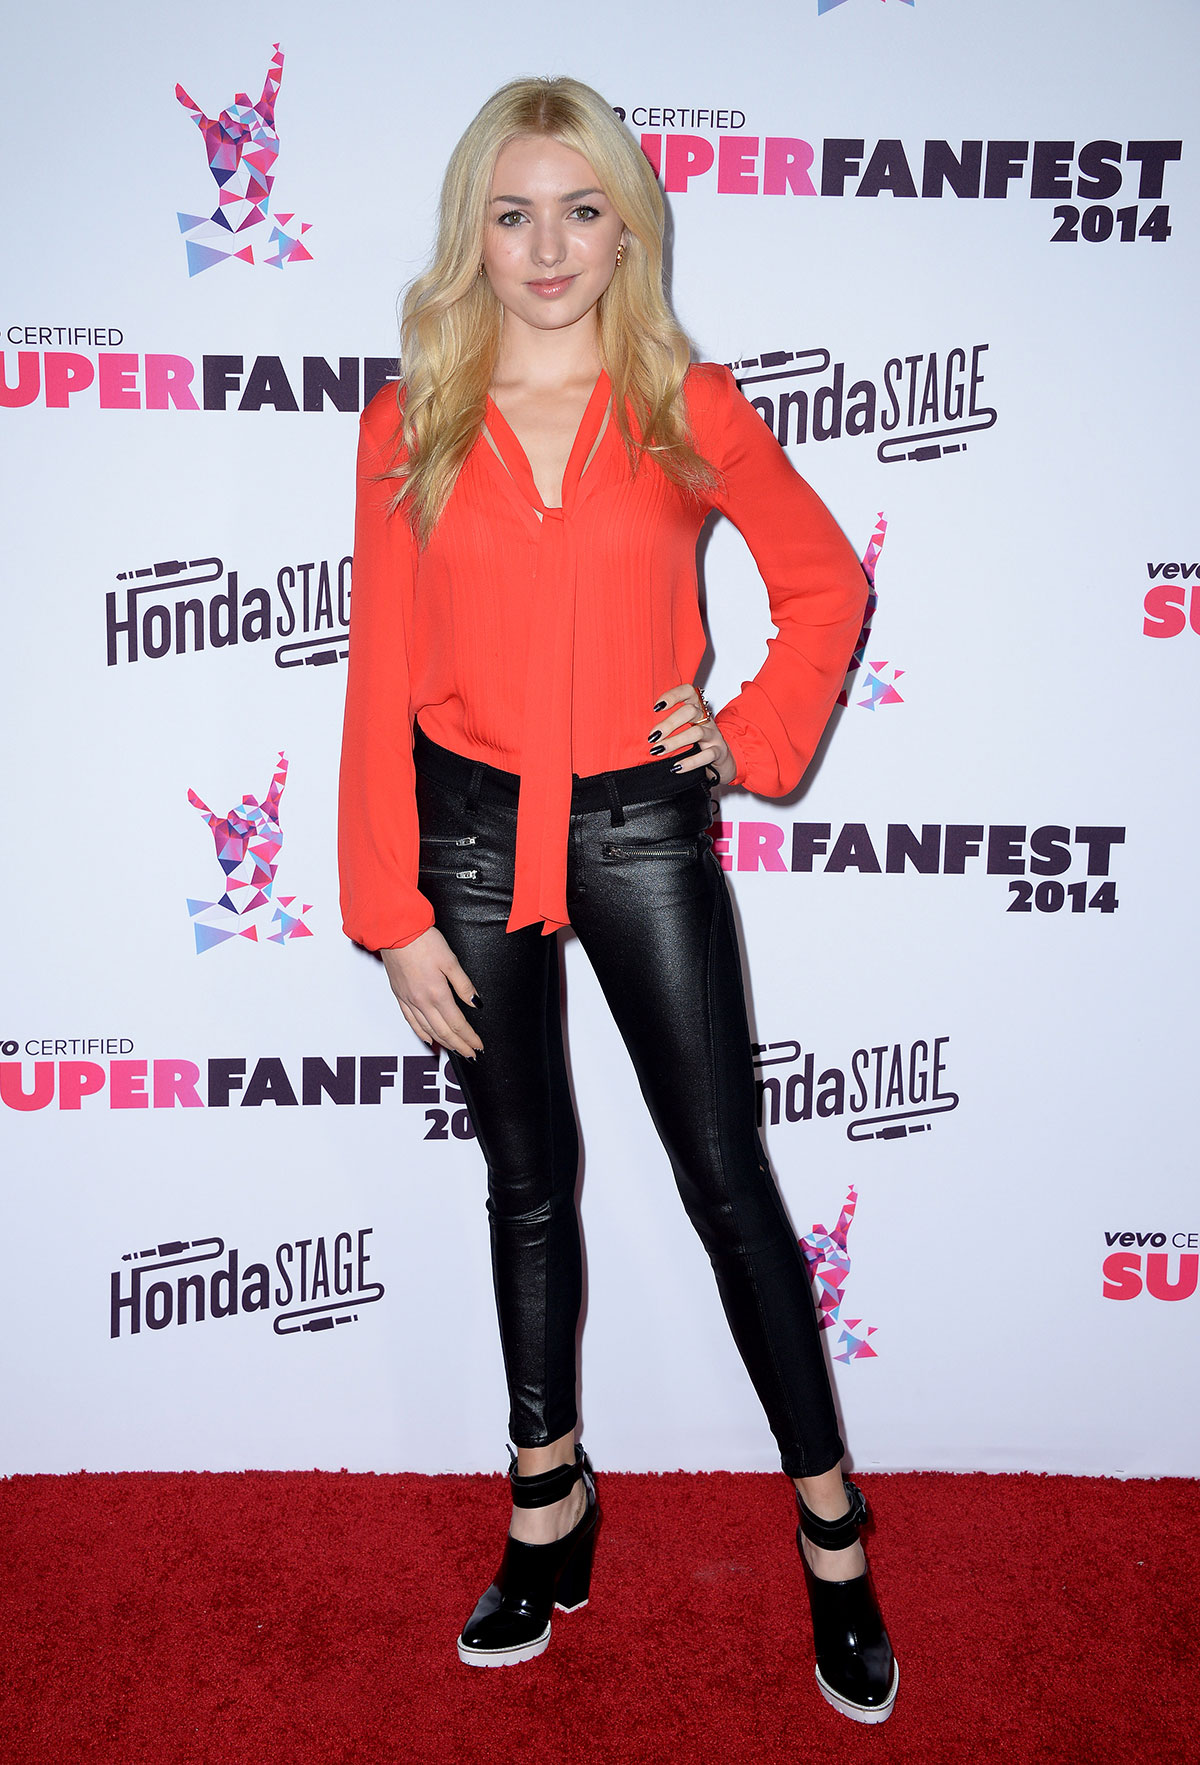 Peyton List attends Vevo CERTIFIED SuperFanFest presented by Honda Stage